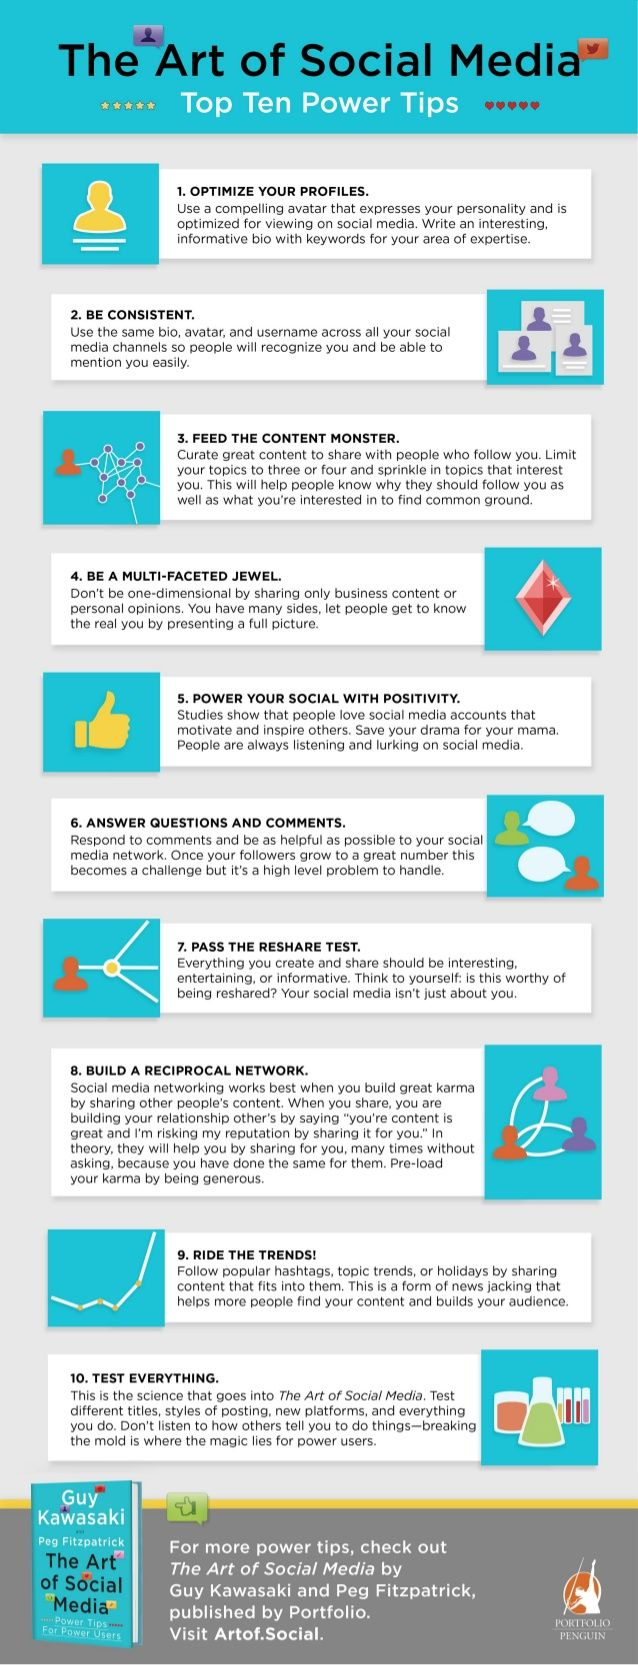 The Art of Social Media Infographic by Guy Kawasaki via slideshare